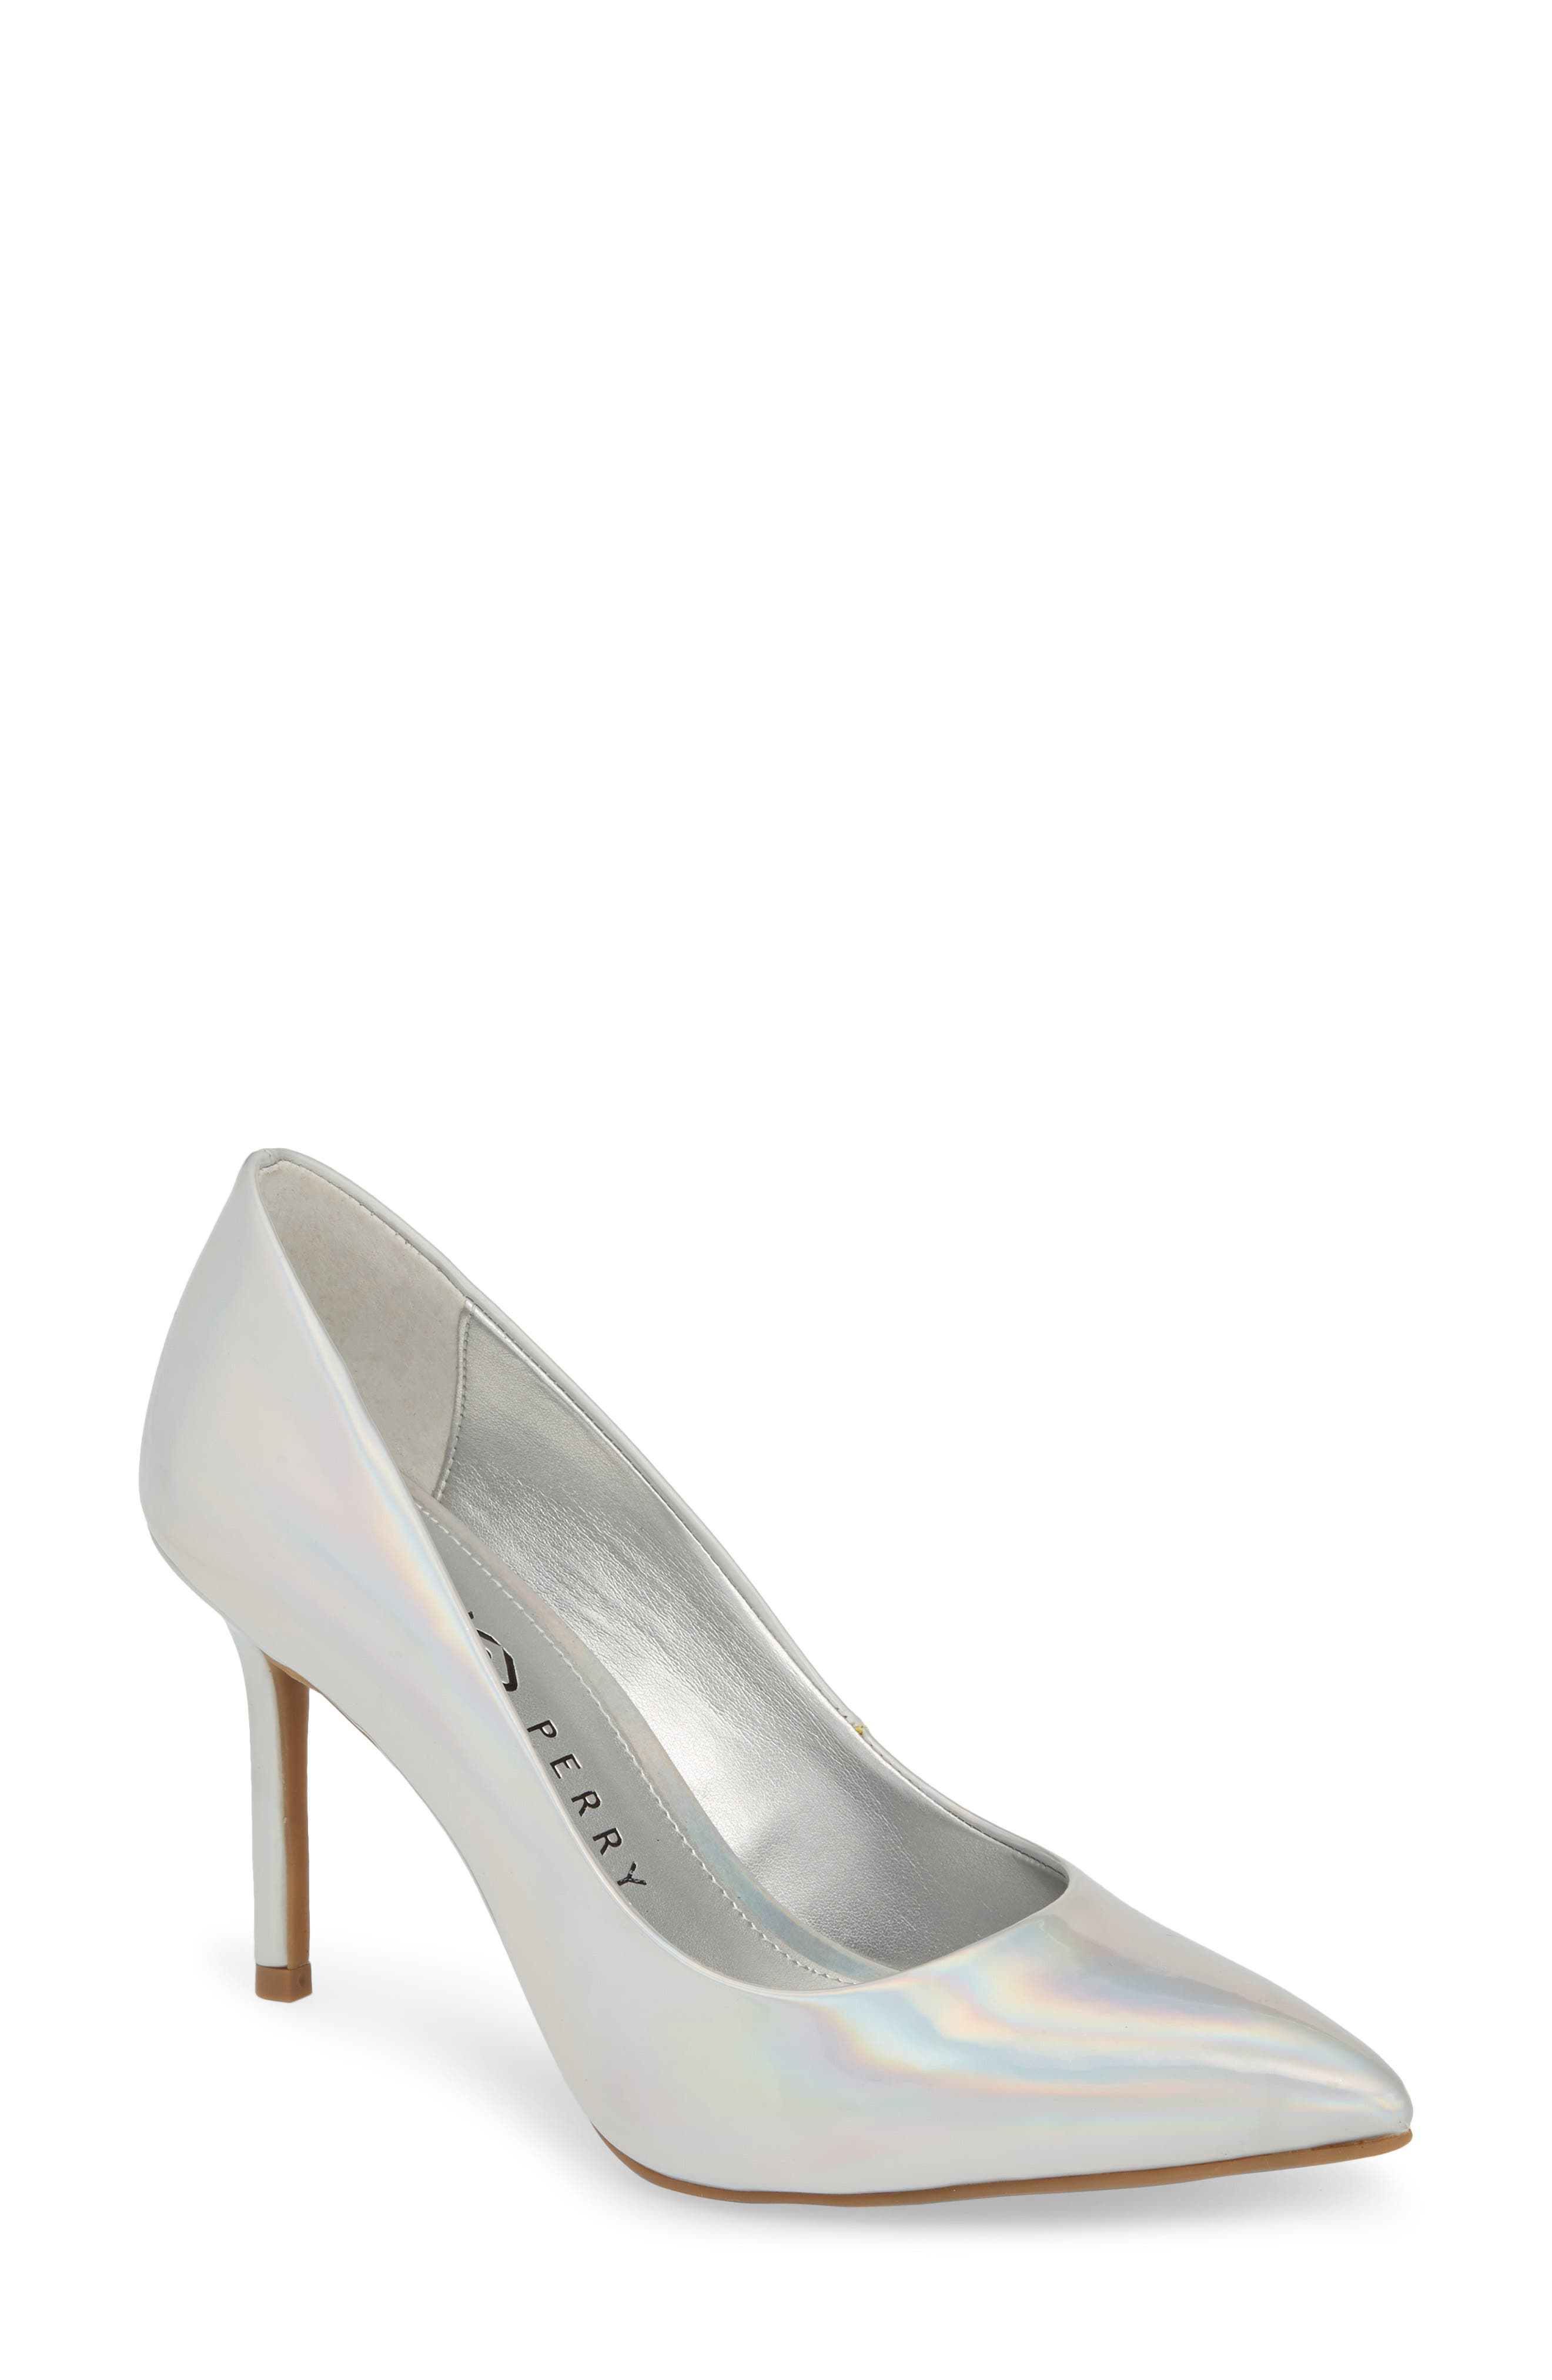 women's katy perry the sissy pump, size 5.5 m - beige